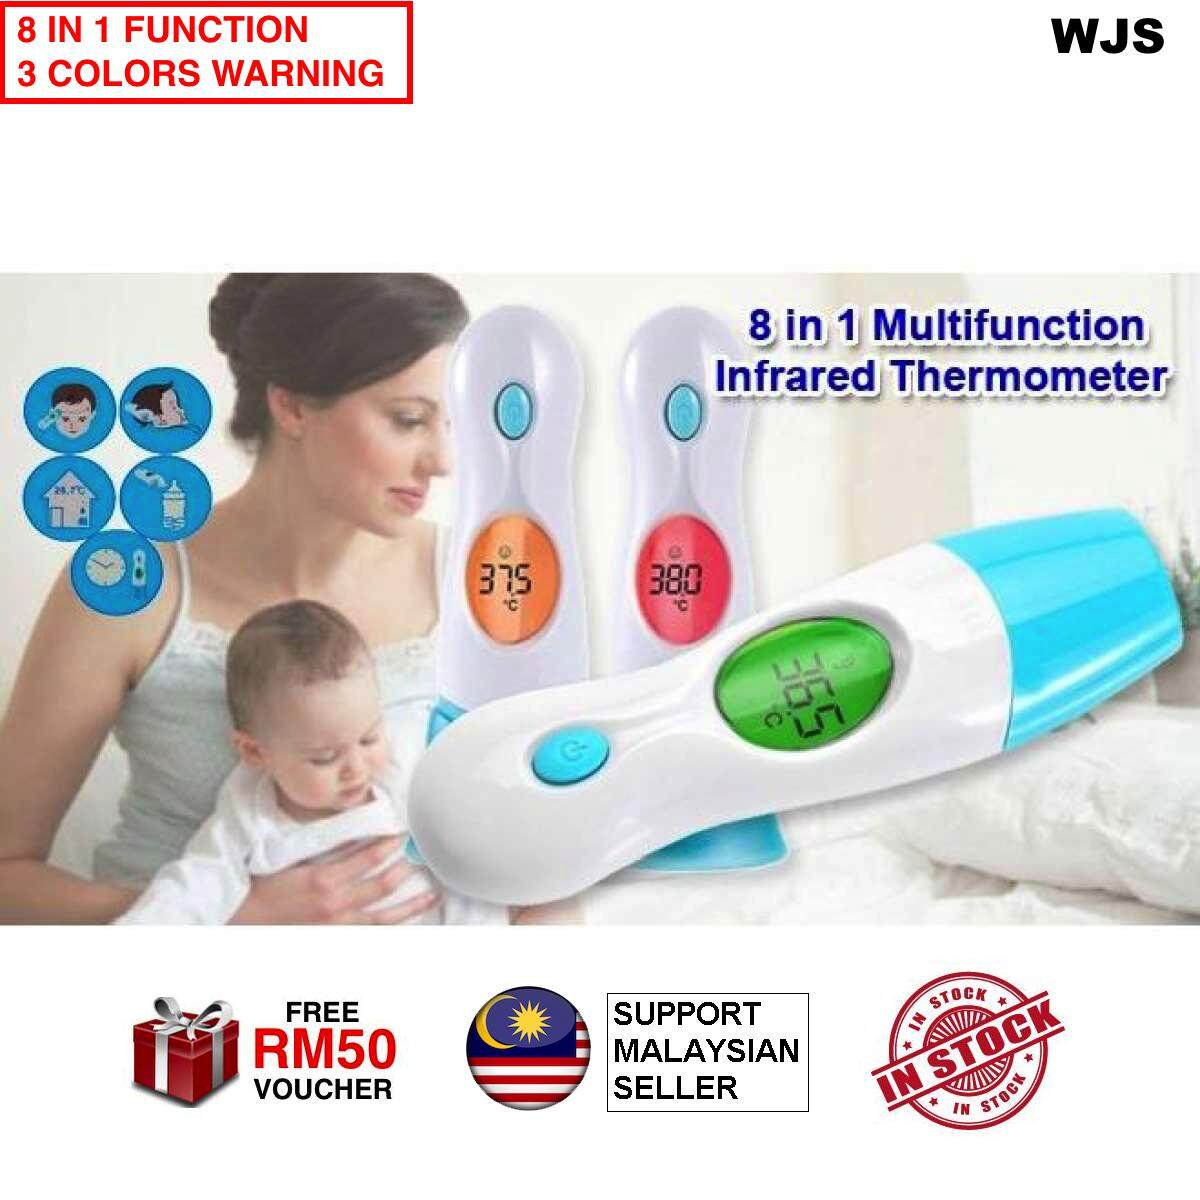 Health Monitors Tests Thermometers Buy Infrared Termometer Gun Anak Digital 3 Colors Warning Wjs 8 In 1 Thermometer Multi Functions Baby Fever Ear Forehead